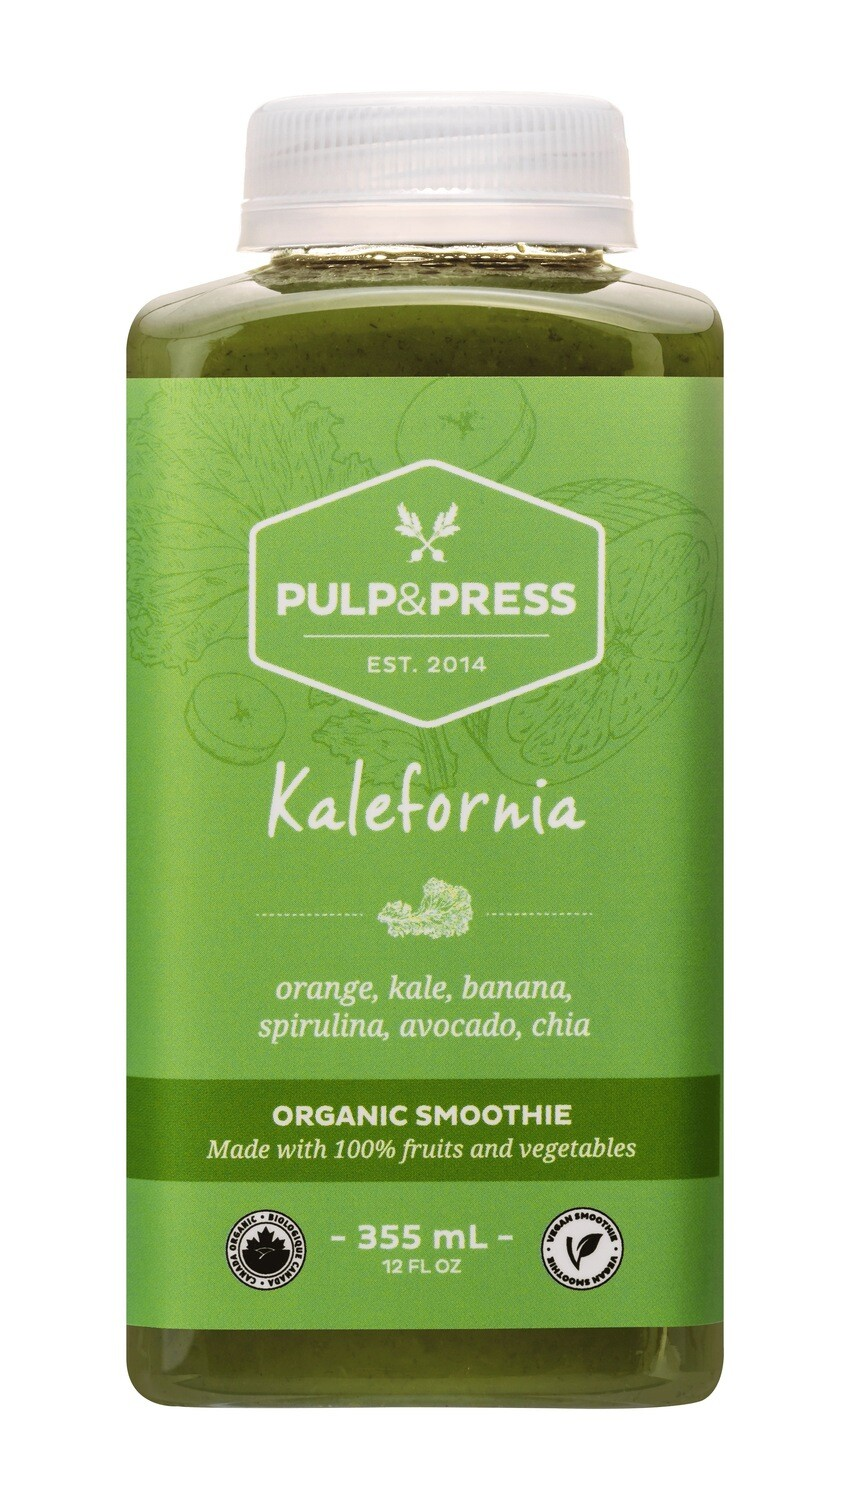 Pulp & Press - Kalefornia Smoothie 355ml